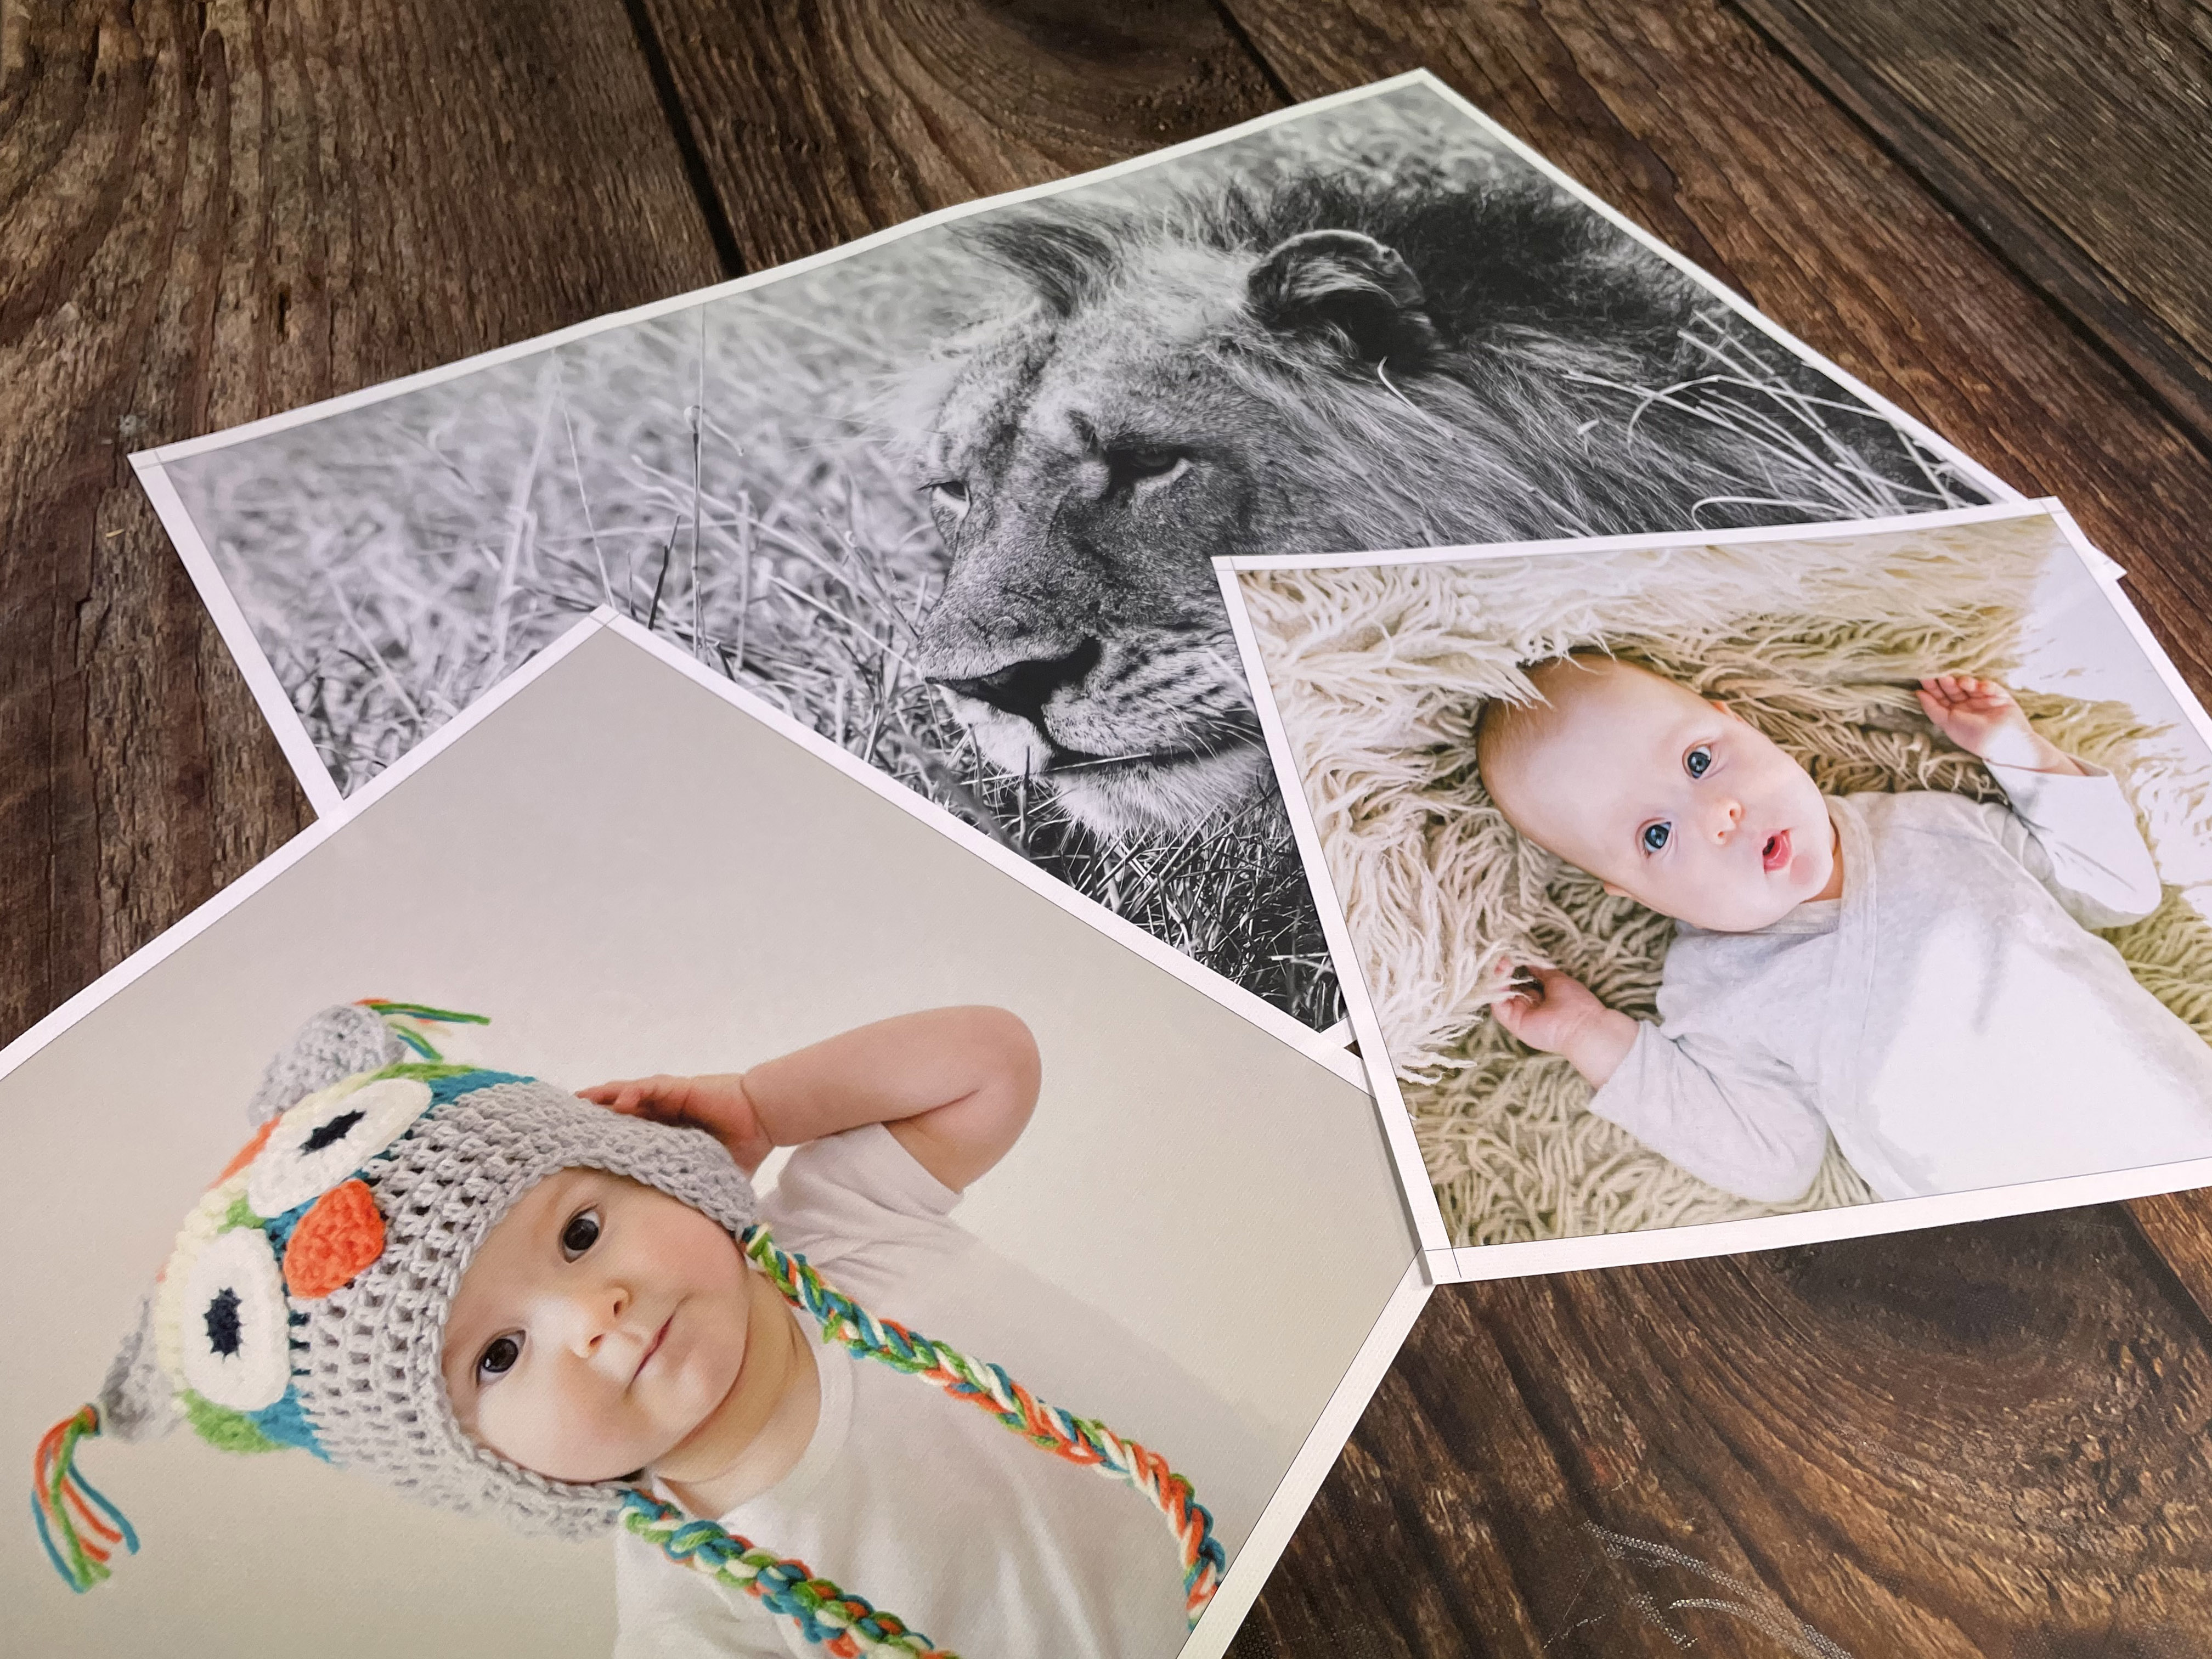 Nursery wall art can be a great place to use family photos, new born baby images or animals printed on poster print!